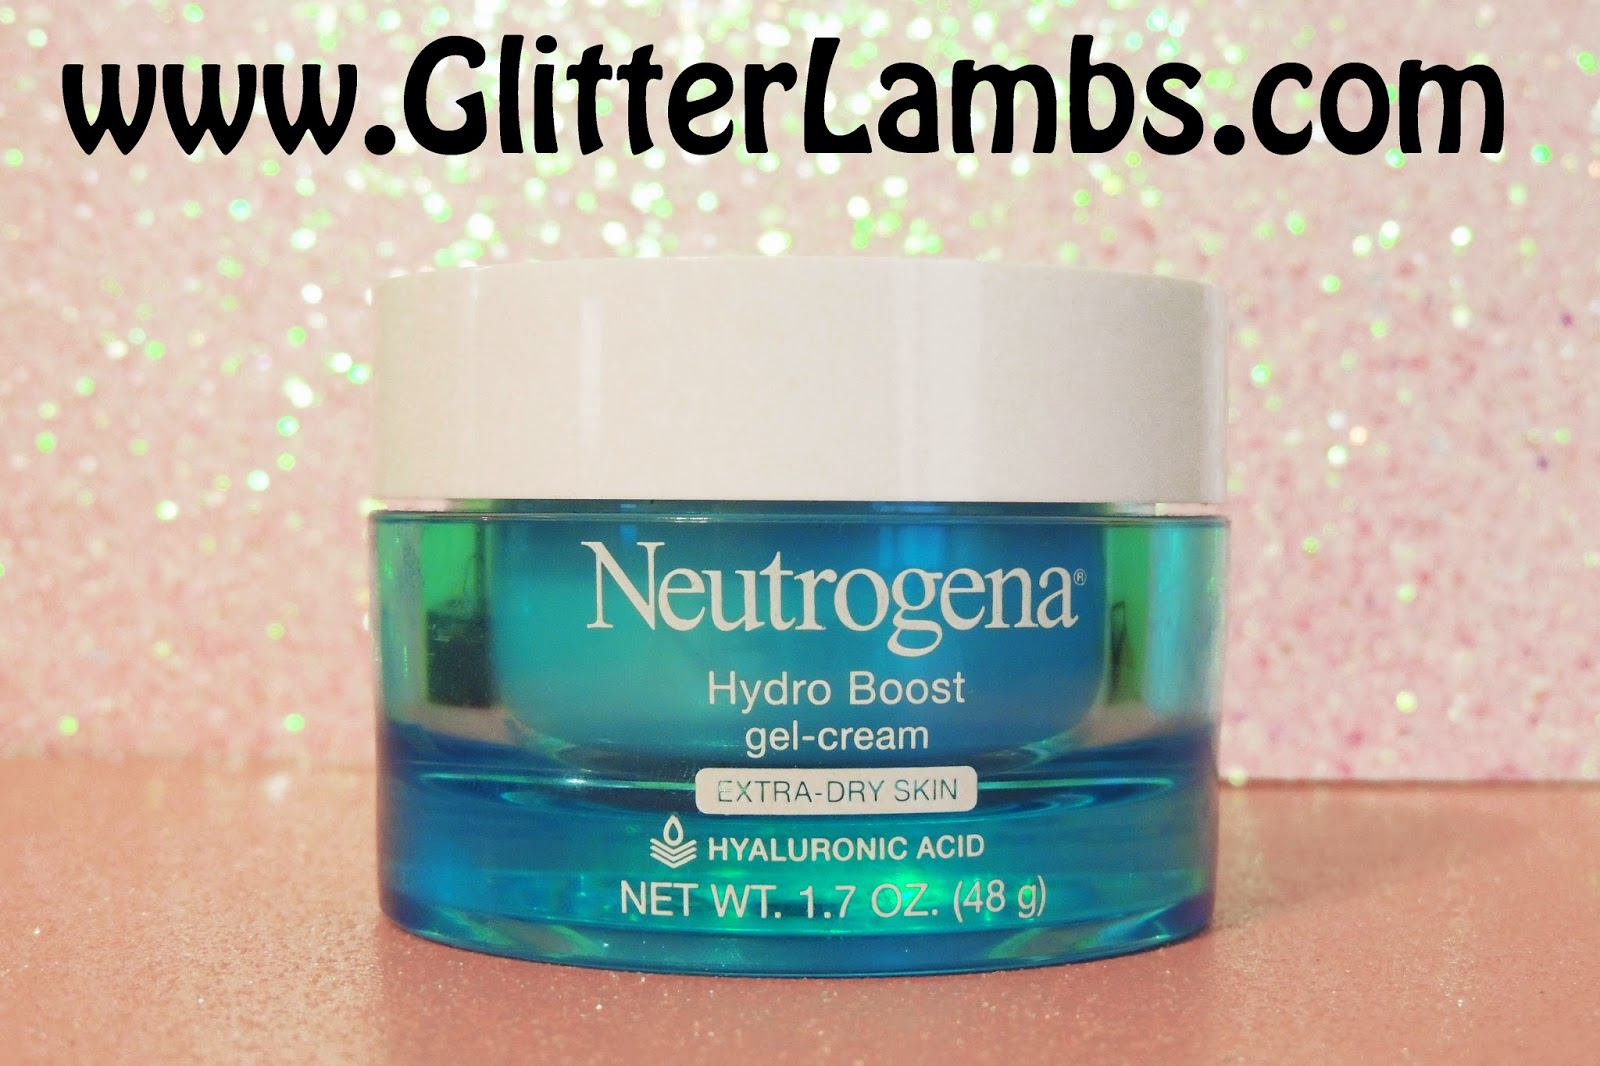 Neutrogena Hydro Boost Gel Cream Hyaluronic Acid Review by Glitter Lambs